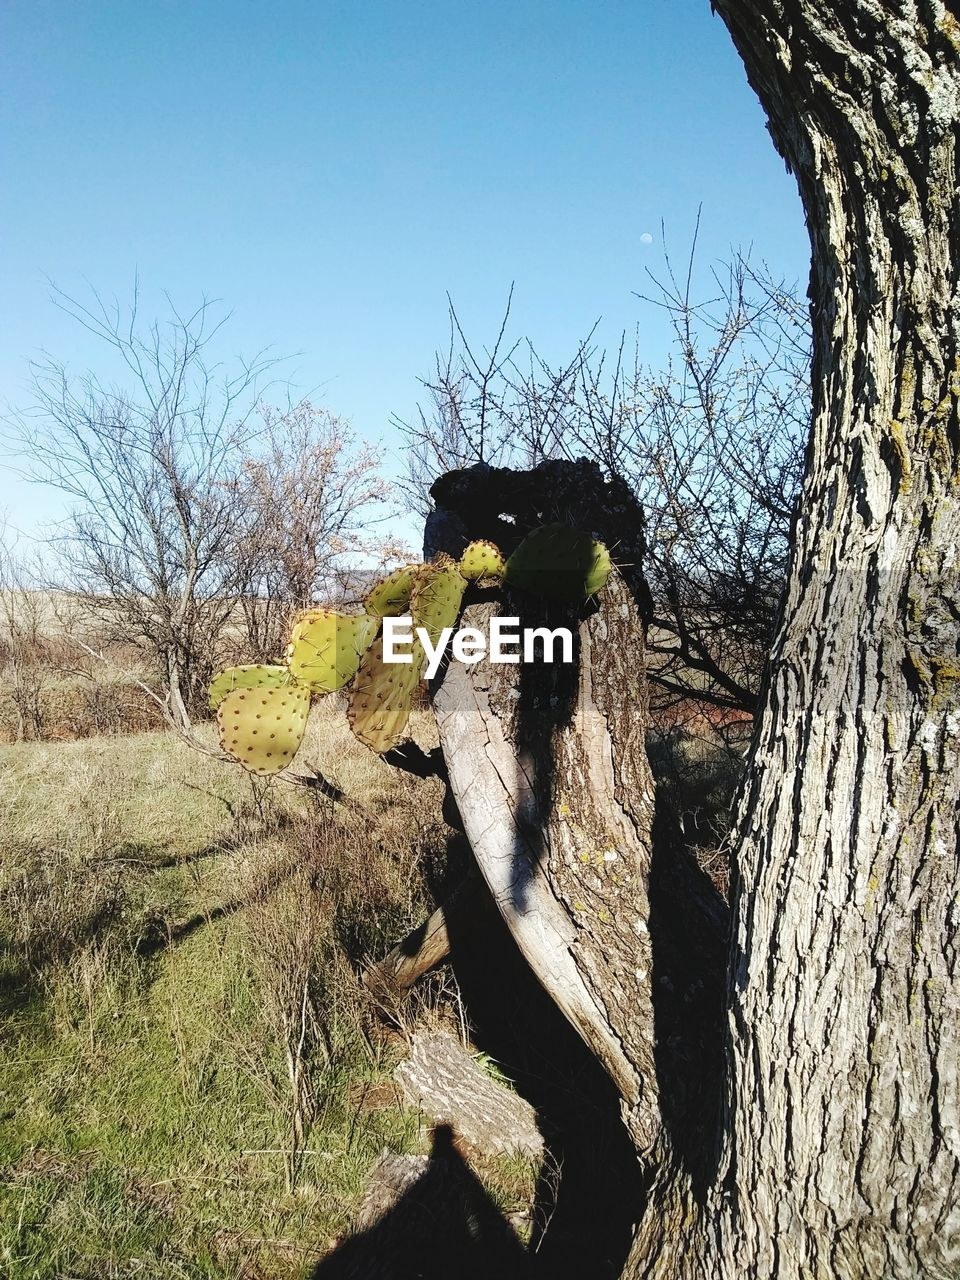 tree, sky, nature, day, animal themes, no people, plant, animal, bare tree, one animal, clear sky, vertebrate, tree trunk, trunk, outdoors, animals in the wild, animal wildlife, field, branch, land, bark